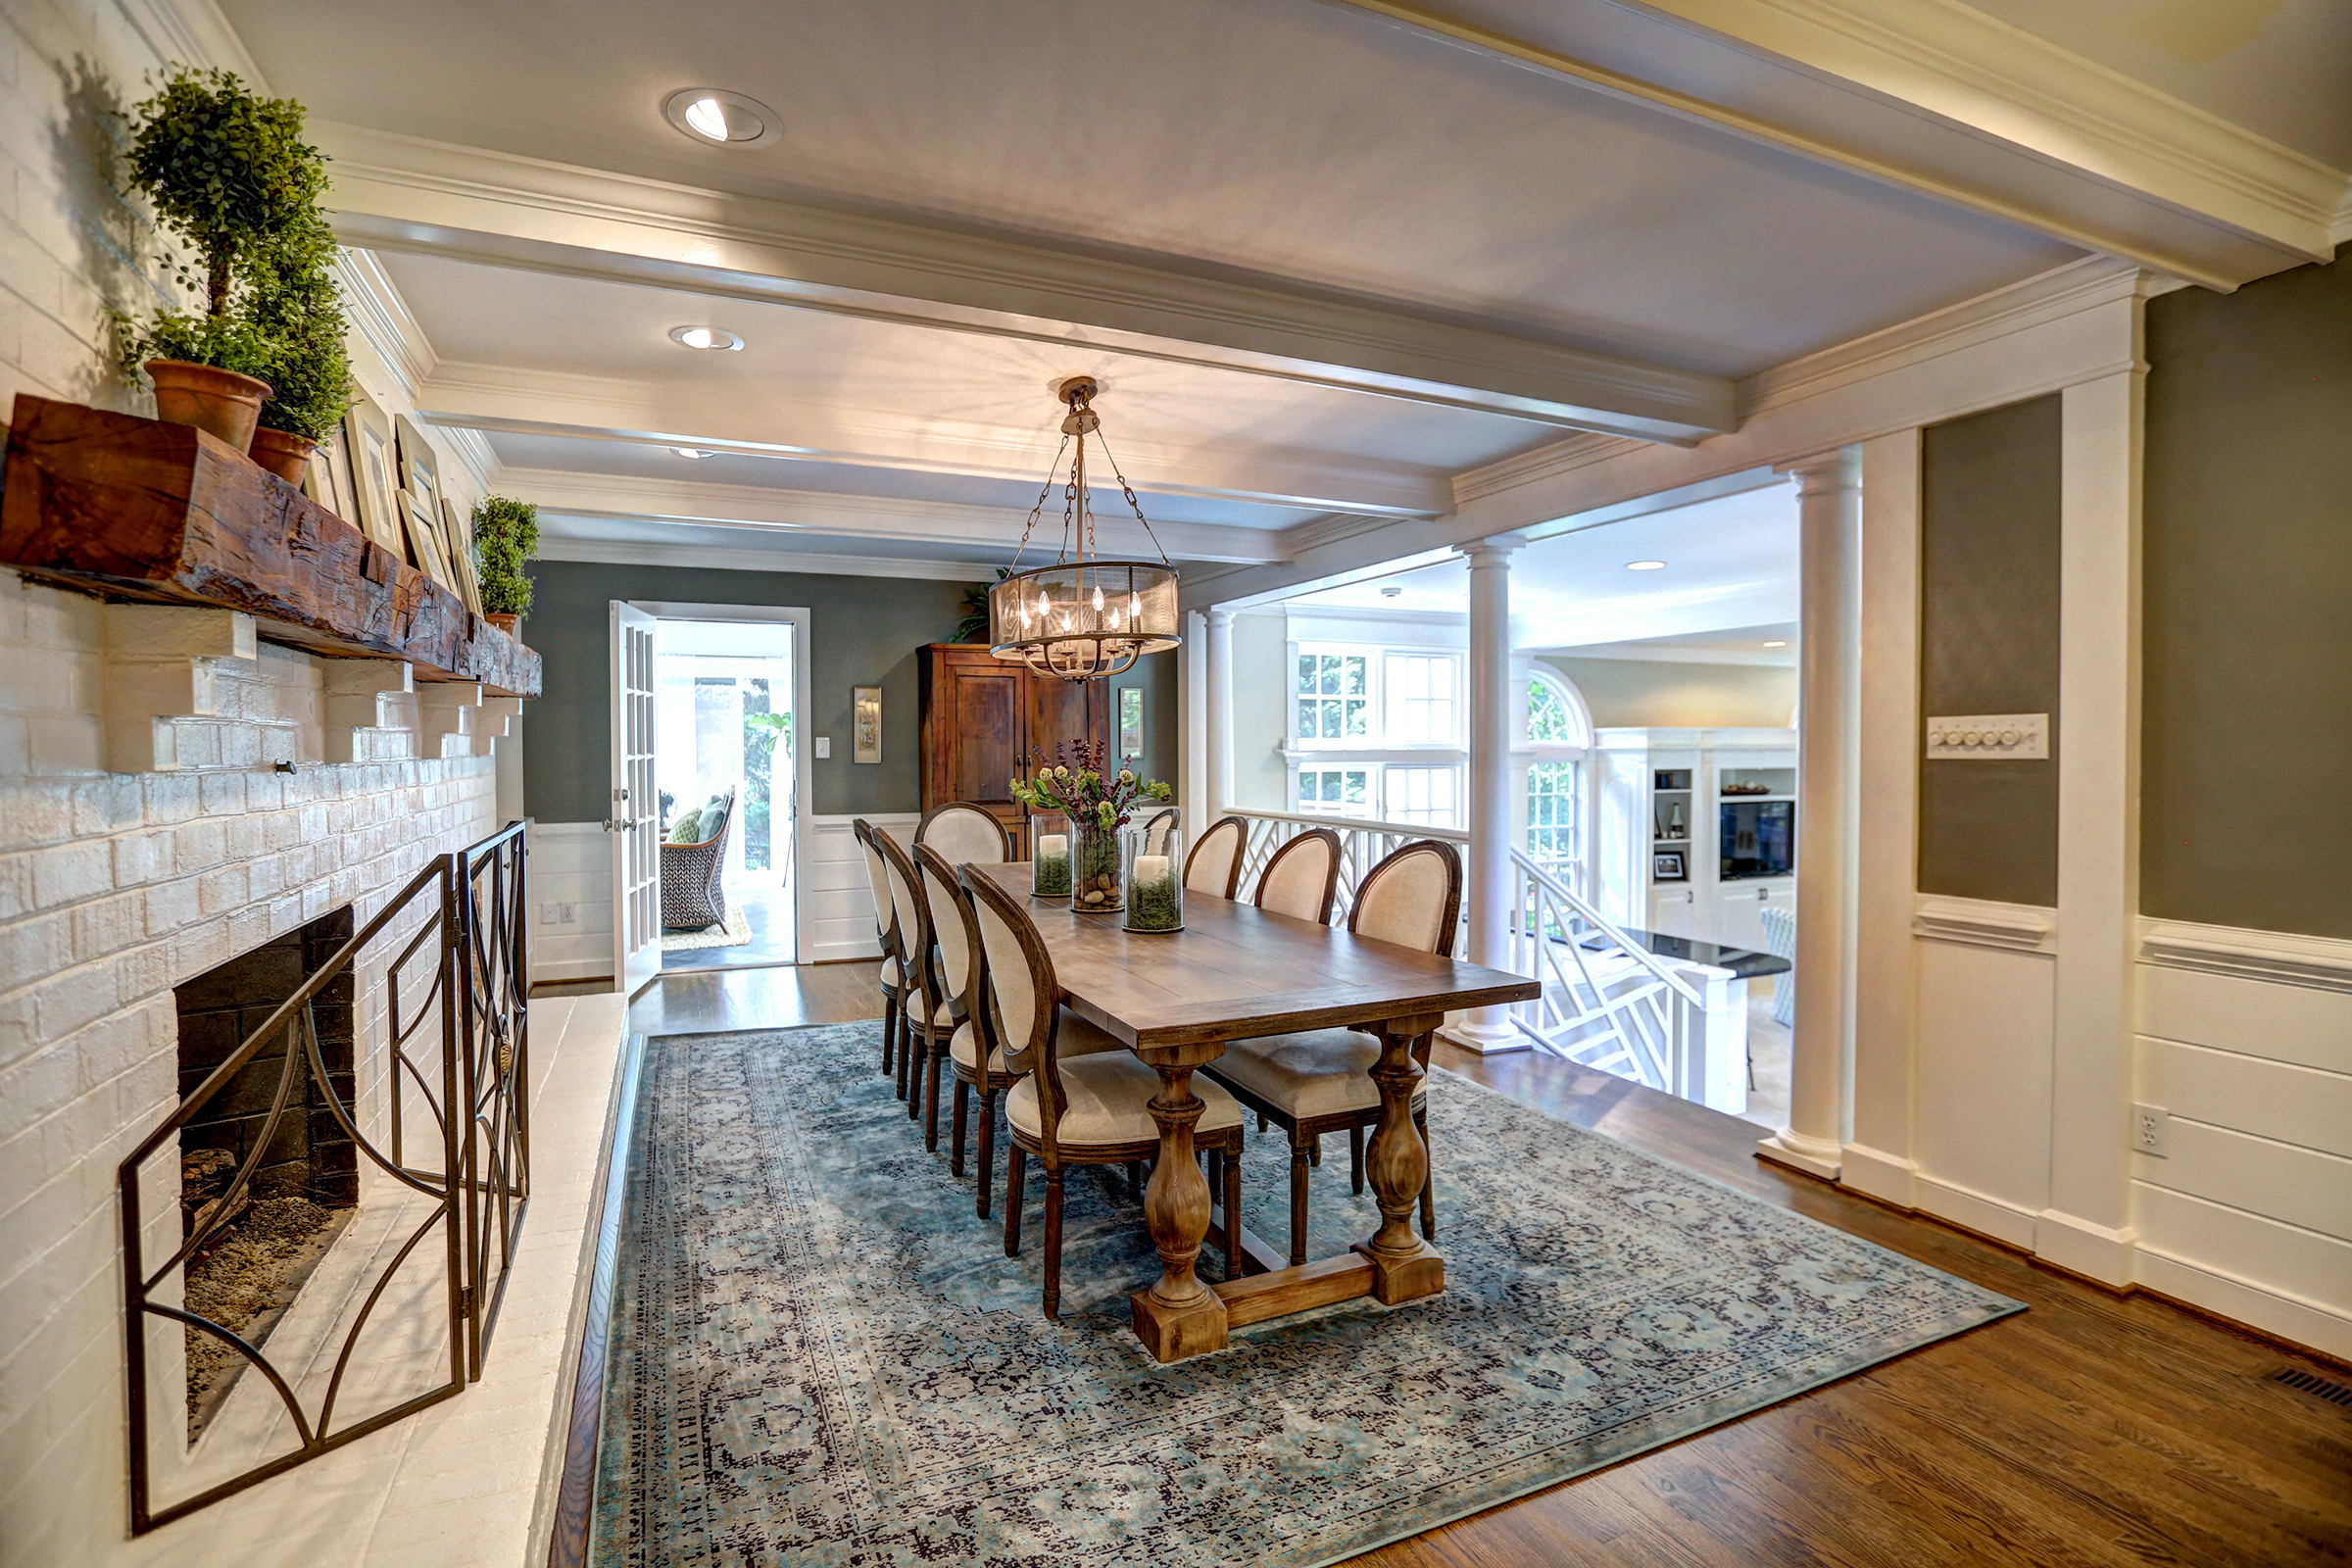 The New Traditional - Classic style that's current, inviting and livable.